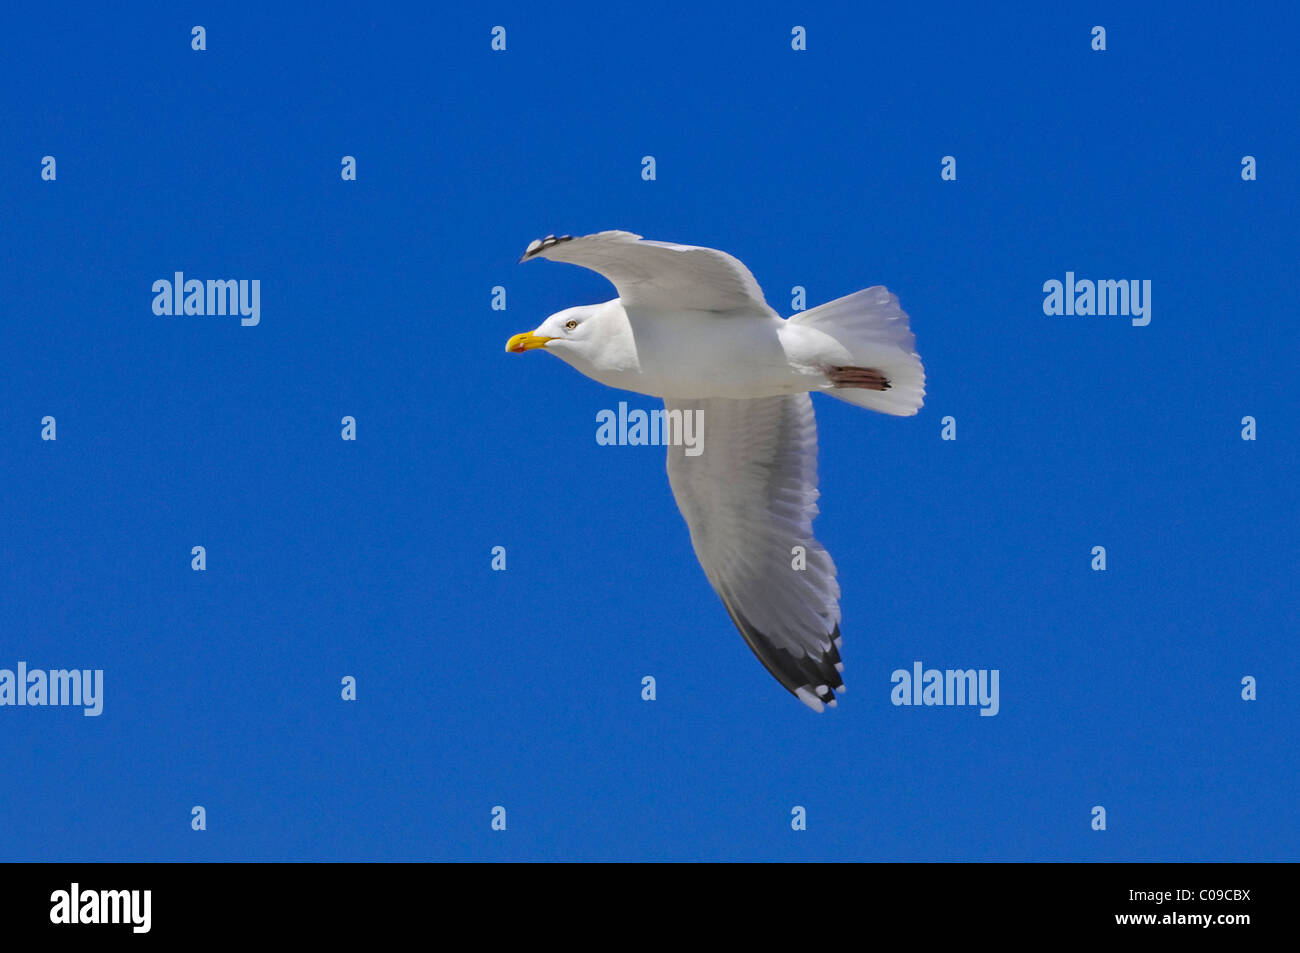 Goéland argenté (Larus argentatus) en vol Photo Stock